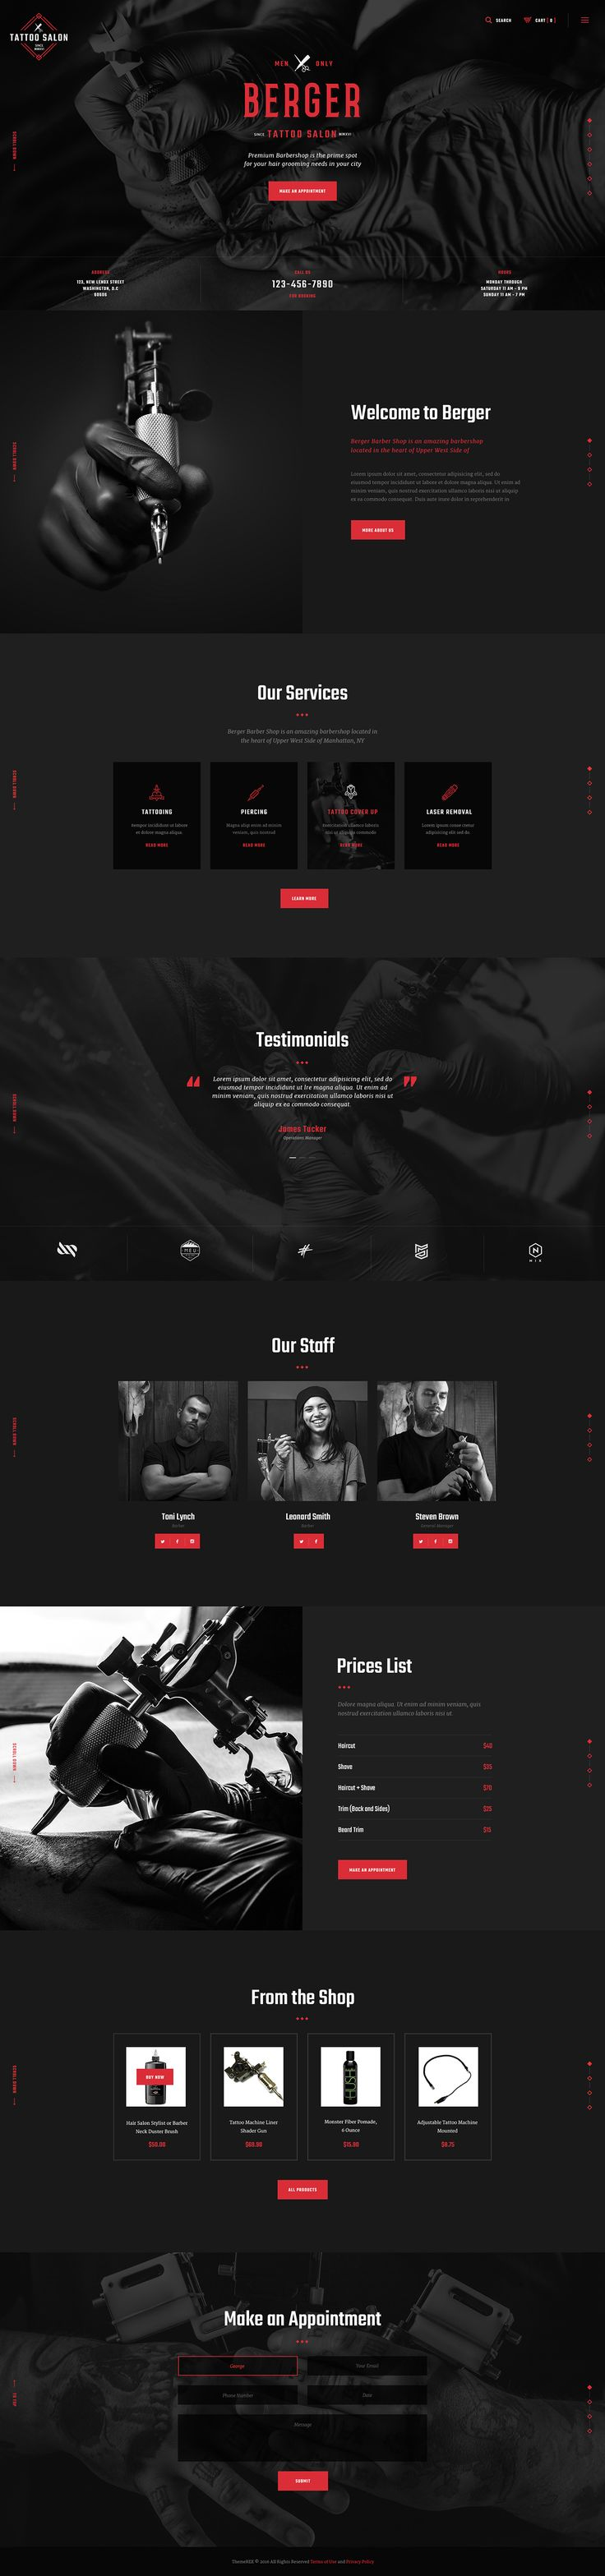 Impressive design with its engaging contents will make your website a real standout amongst barbershops and tattoo salons. Berger was created to serve as hairdresser's portfolio, blog on barberging/hairdressing, hair salon's or beauty shop's website.                                                                                                                                                                                 More